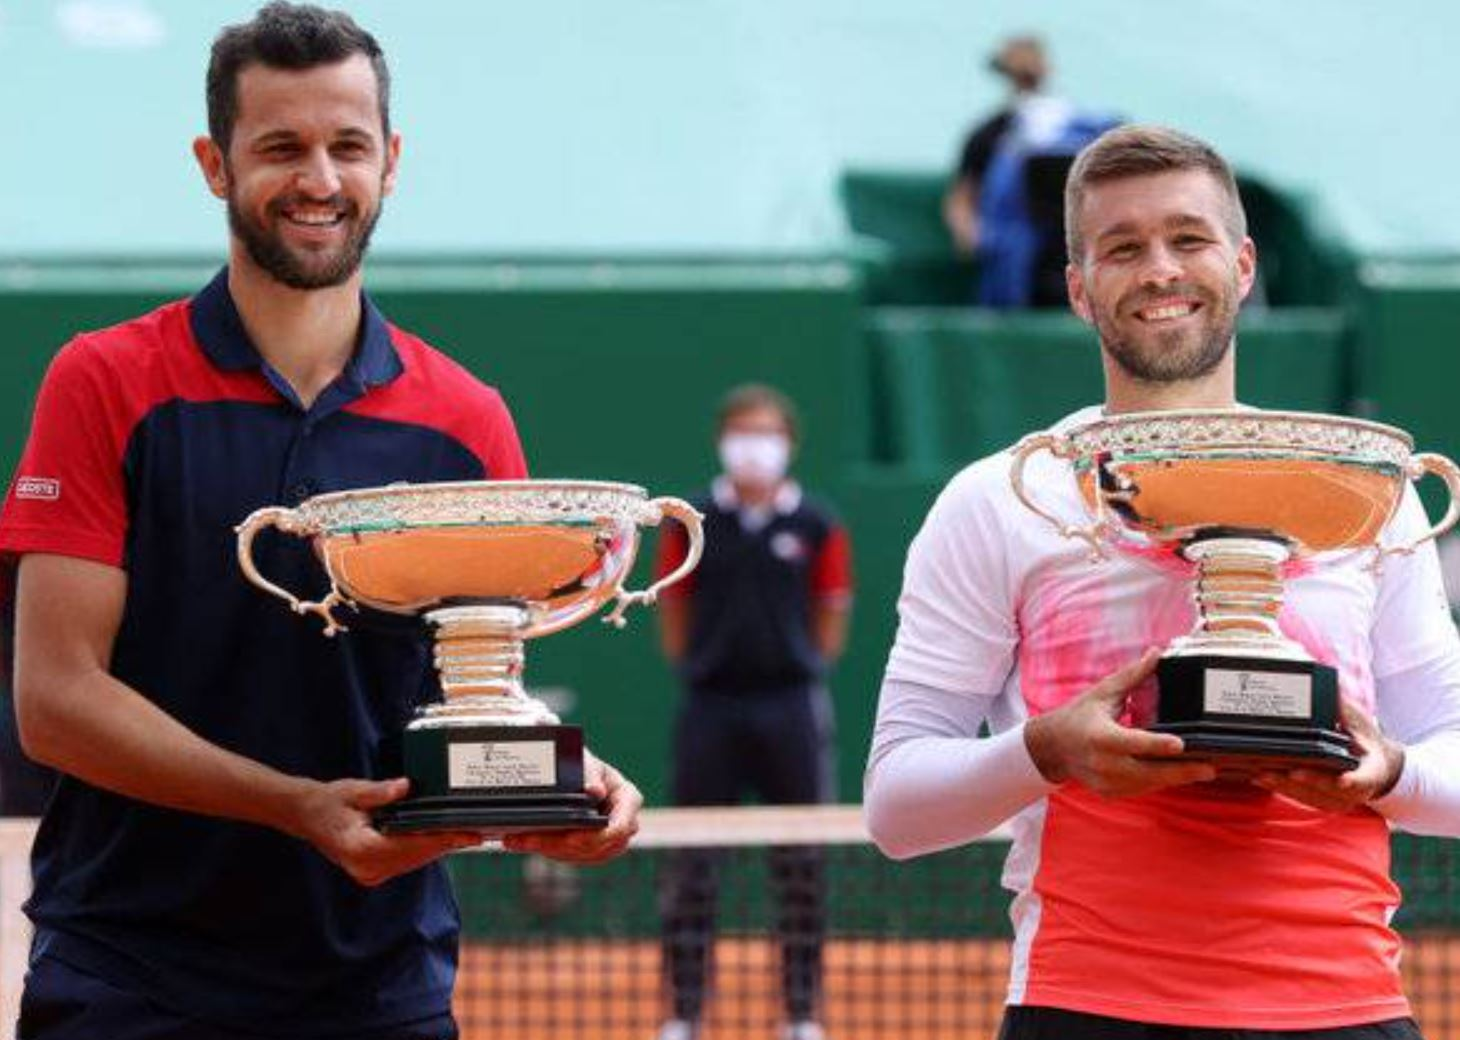 Mektic and Pavic, Top Seeds, Ruled out of Roland-Garros Due to Positive Covid-19 Test